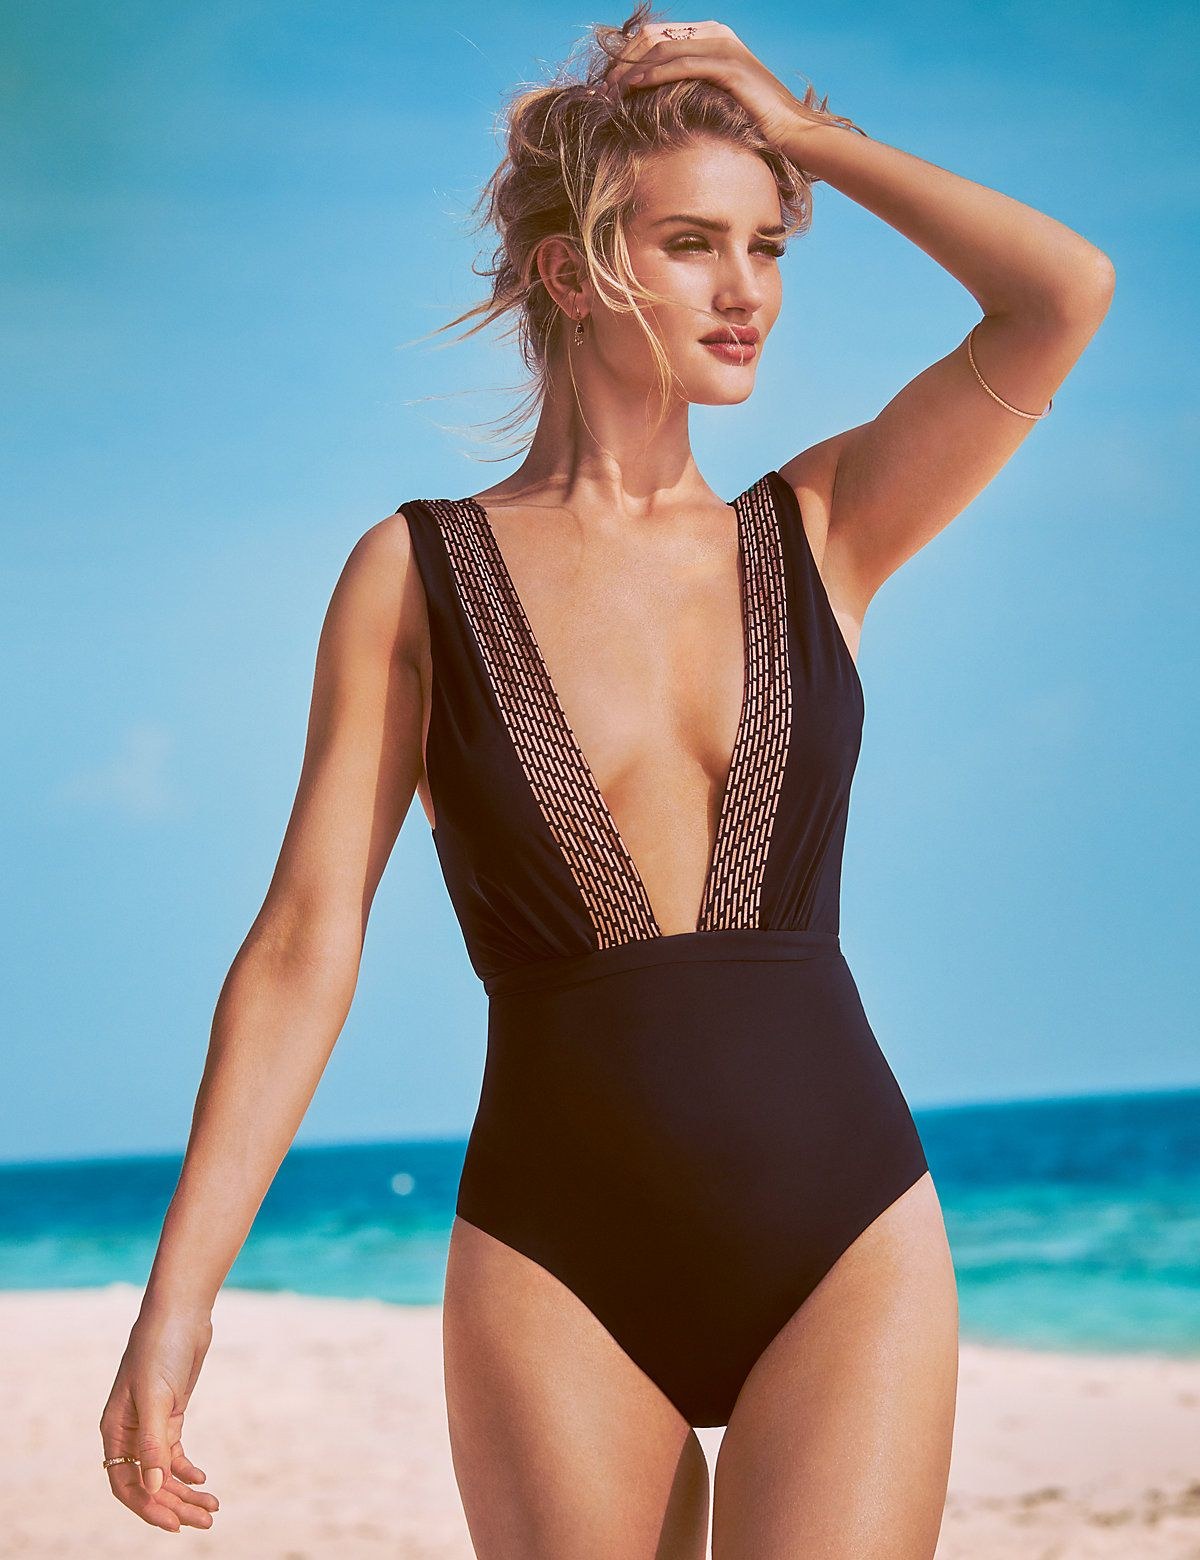 Rosie Huntington-Whiteley Launches New Swimwear Range for MS recommendations